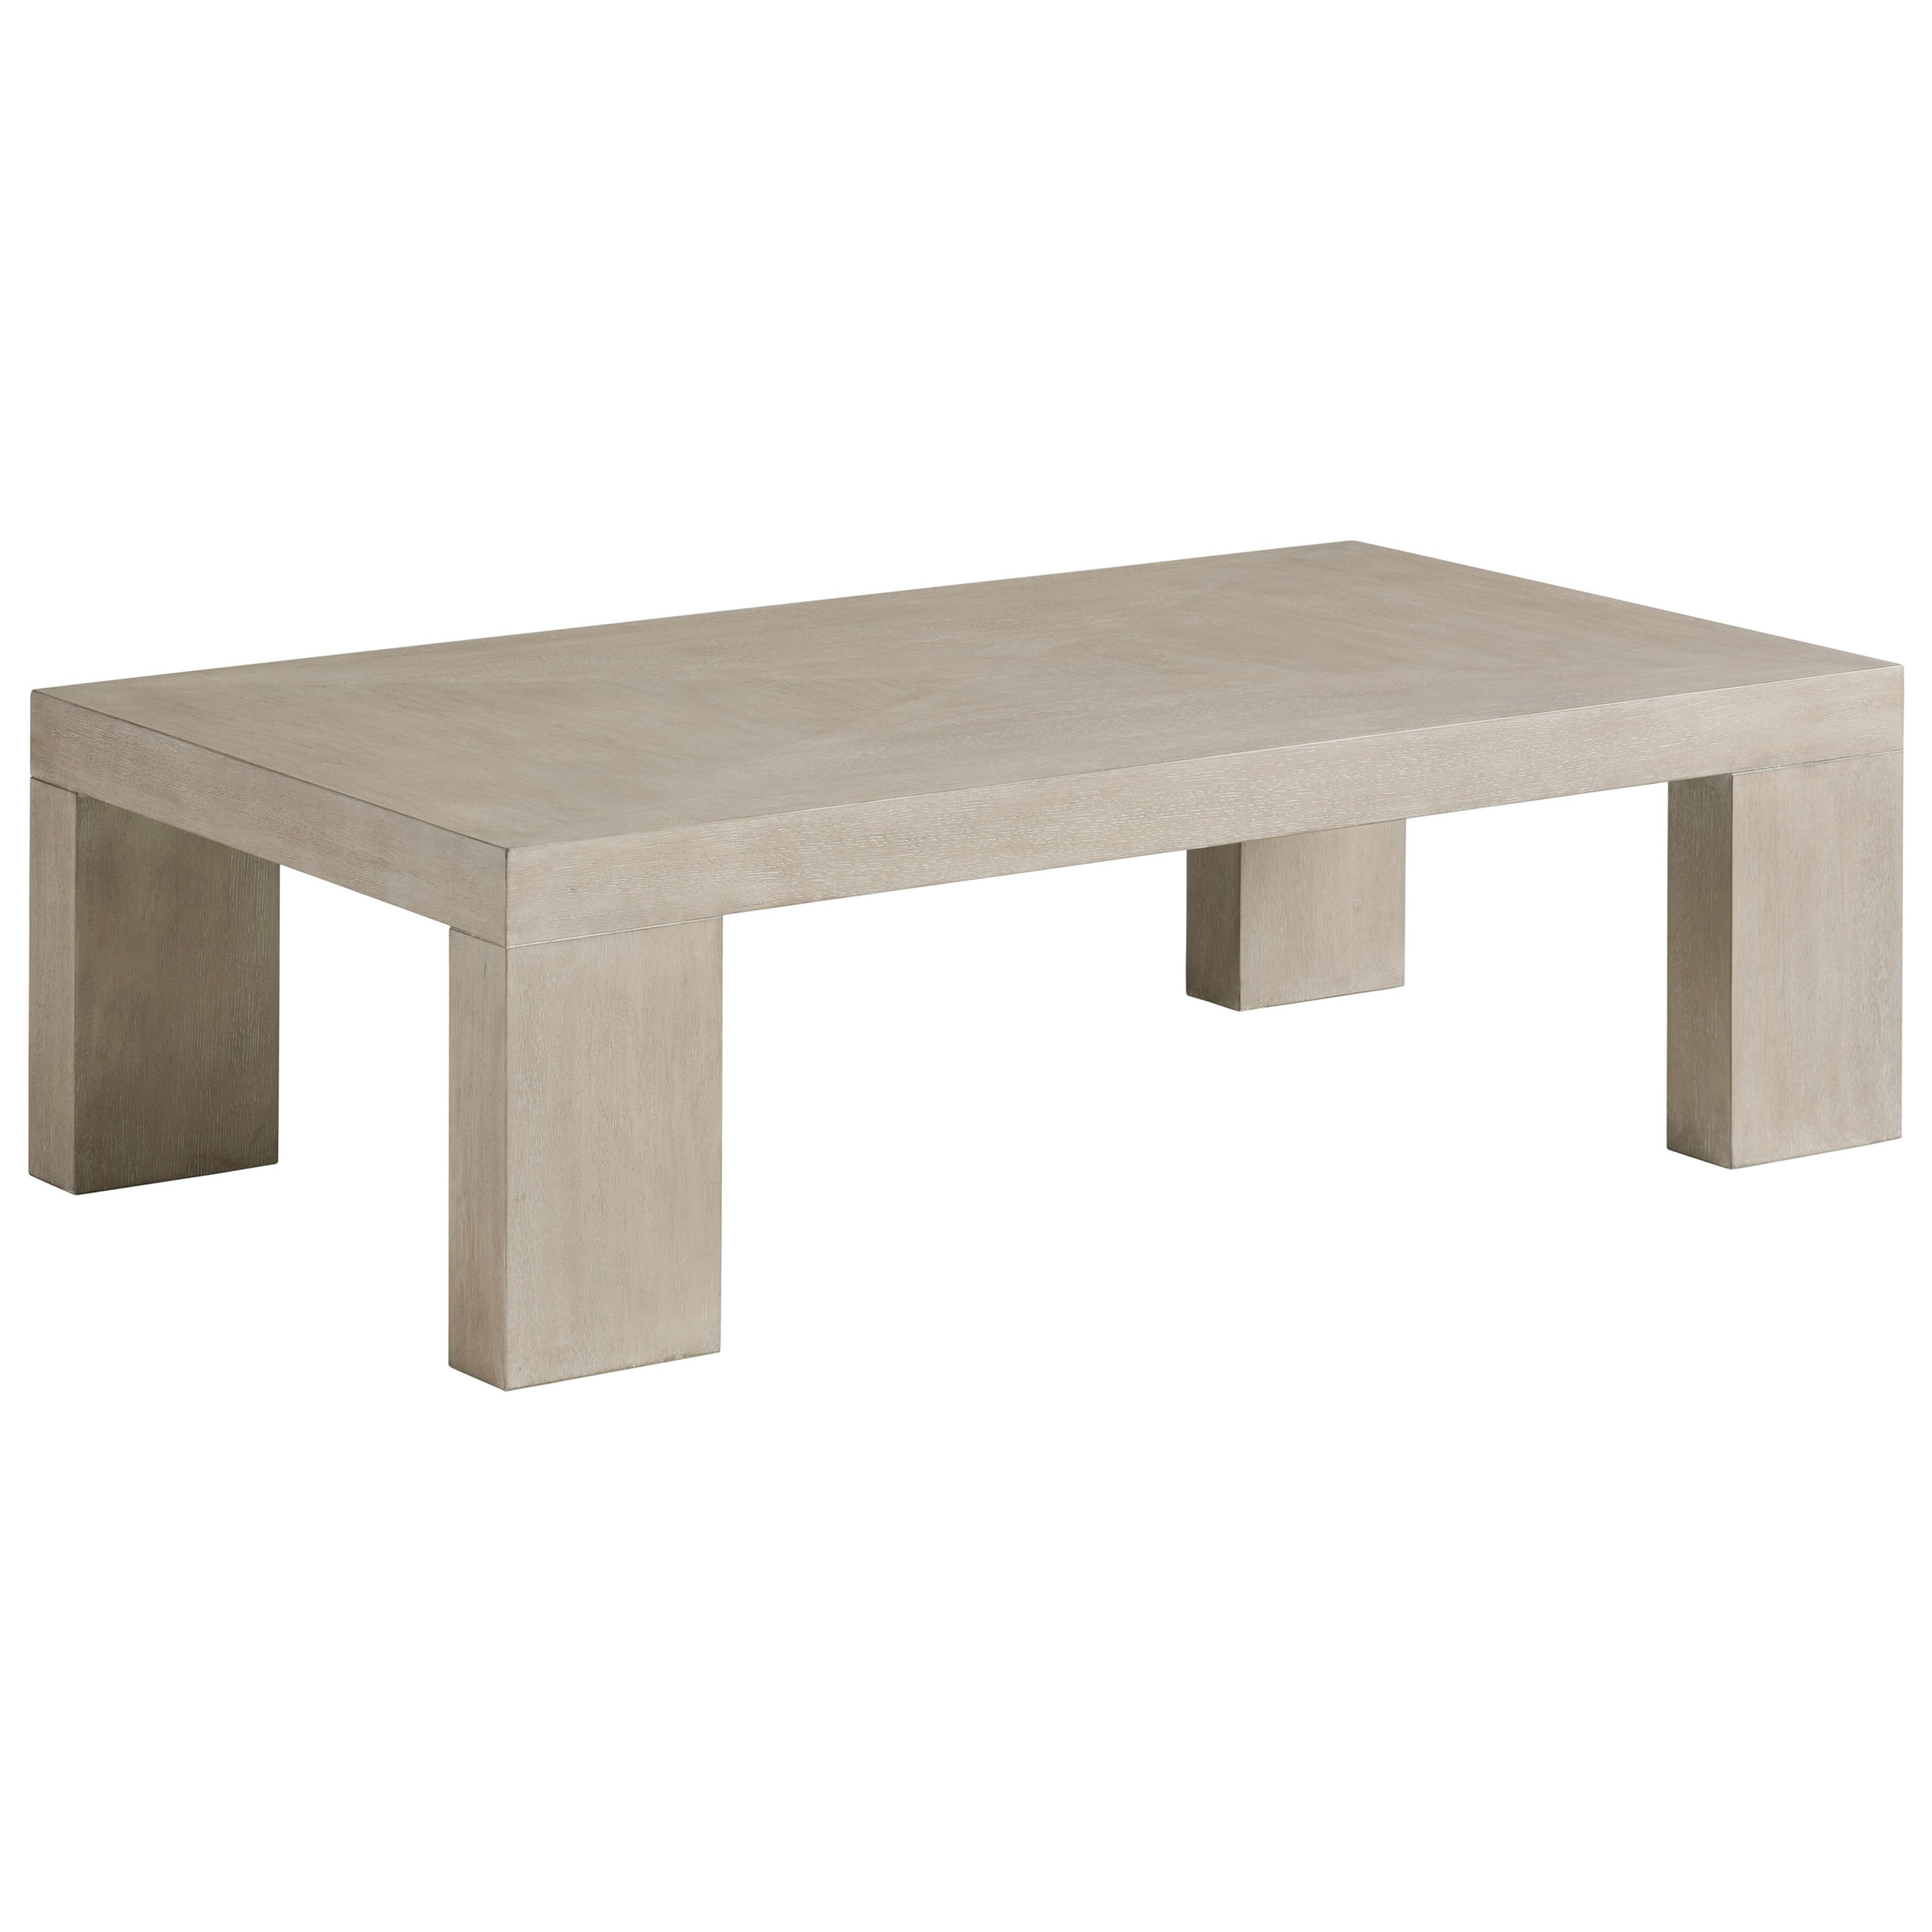 Malibu Surfrider Cocktail Table by Barclay Butera at Baer's Furniture